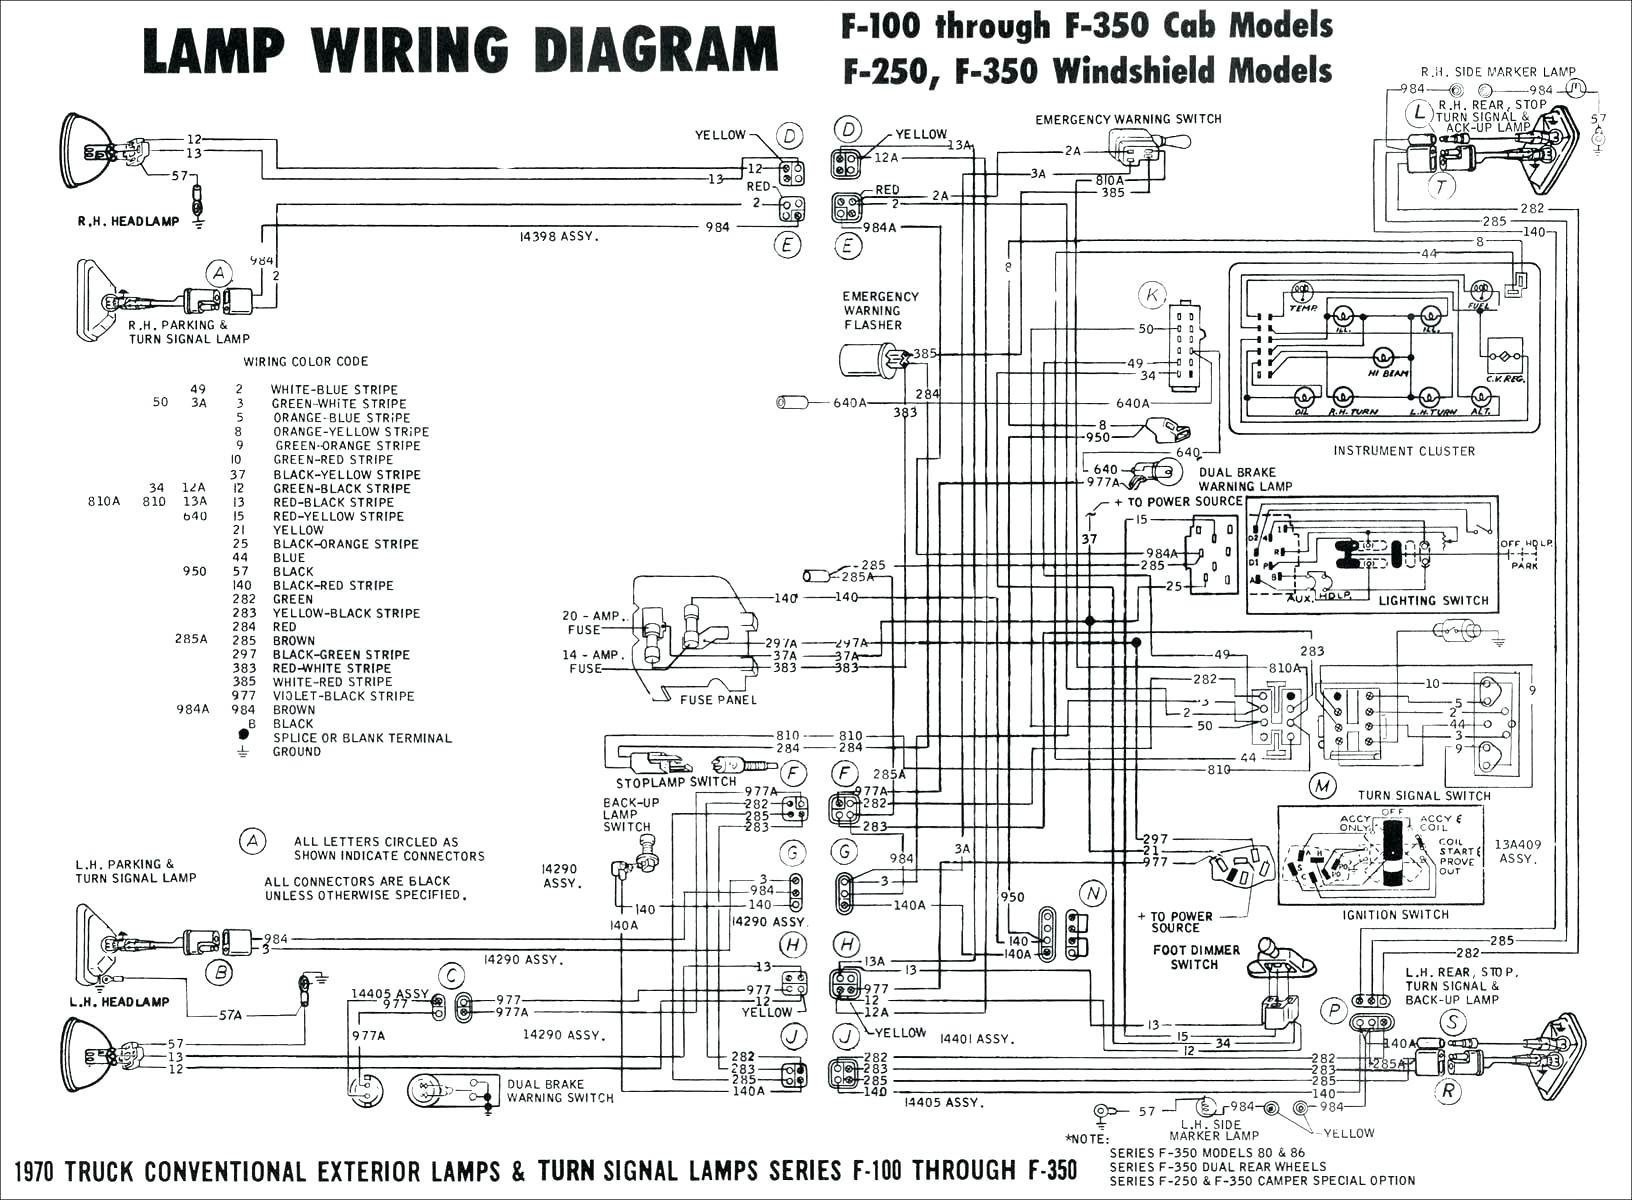 2007 Audi A4 Engine Diagram 1996 Audi A4 Electrical Diagram Wiring Diagram Services • Of 2007 Audi A4 Engine Diagram How to Replace Timing Belt Cambelt and Water Pump On 2 0 Tdi